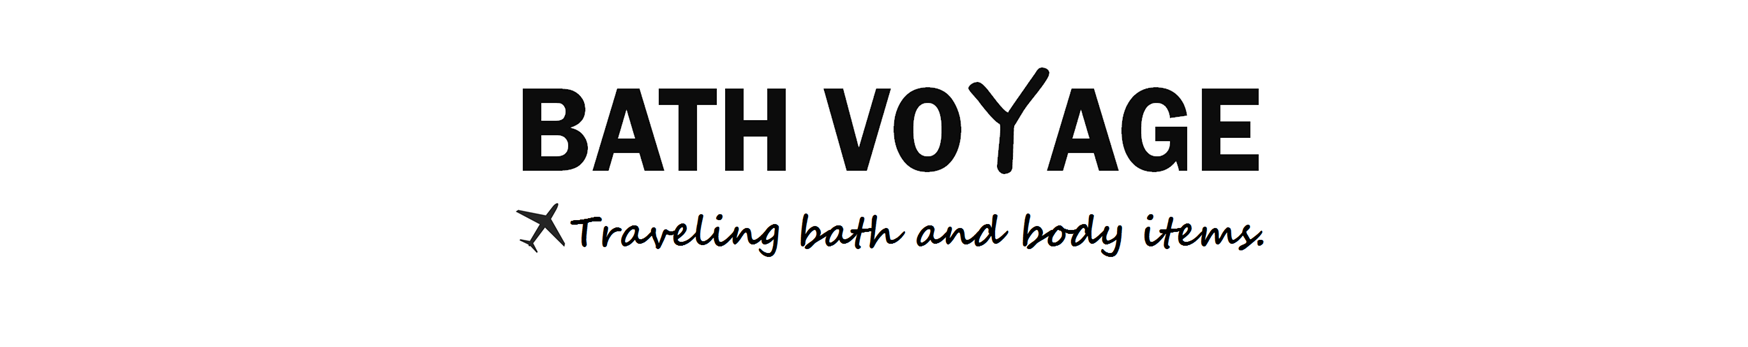 BATH VOYAGE: TRAVELING BATH AND BODY ITEMS